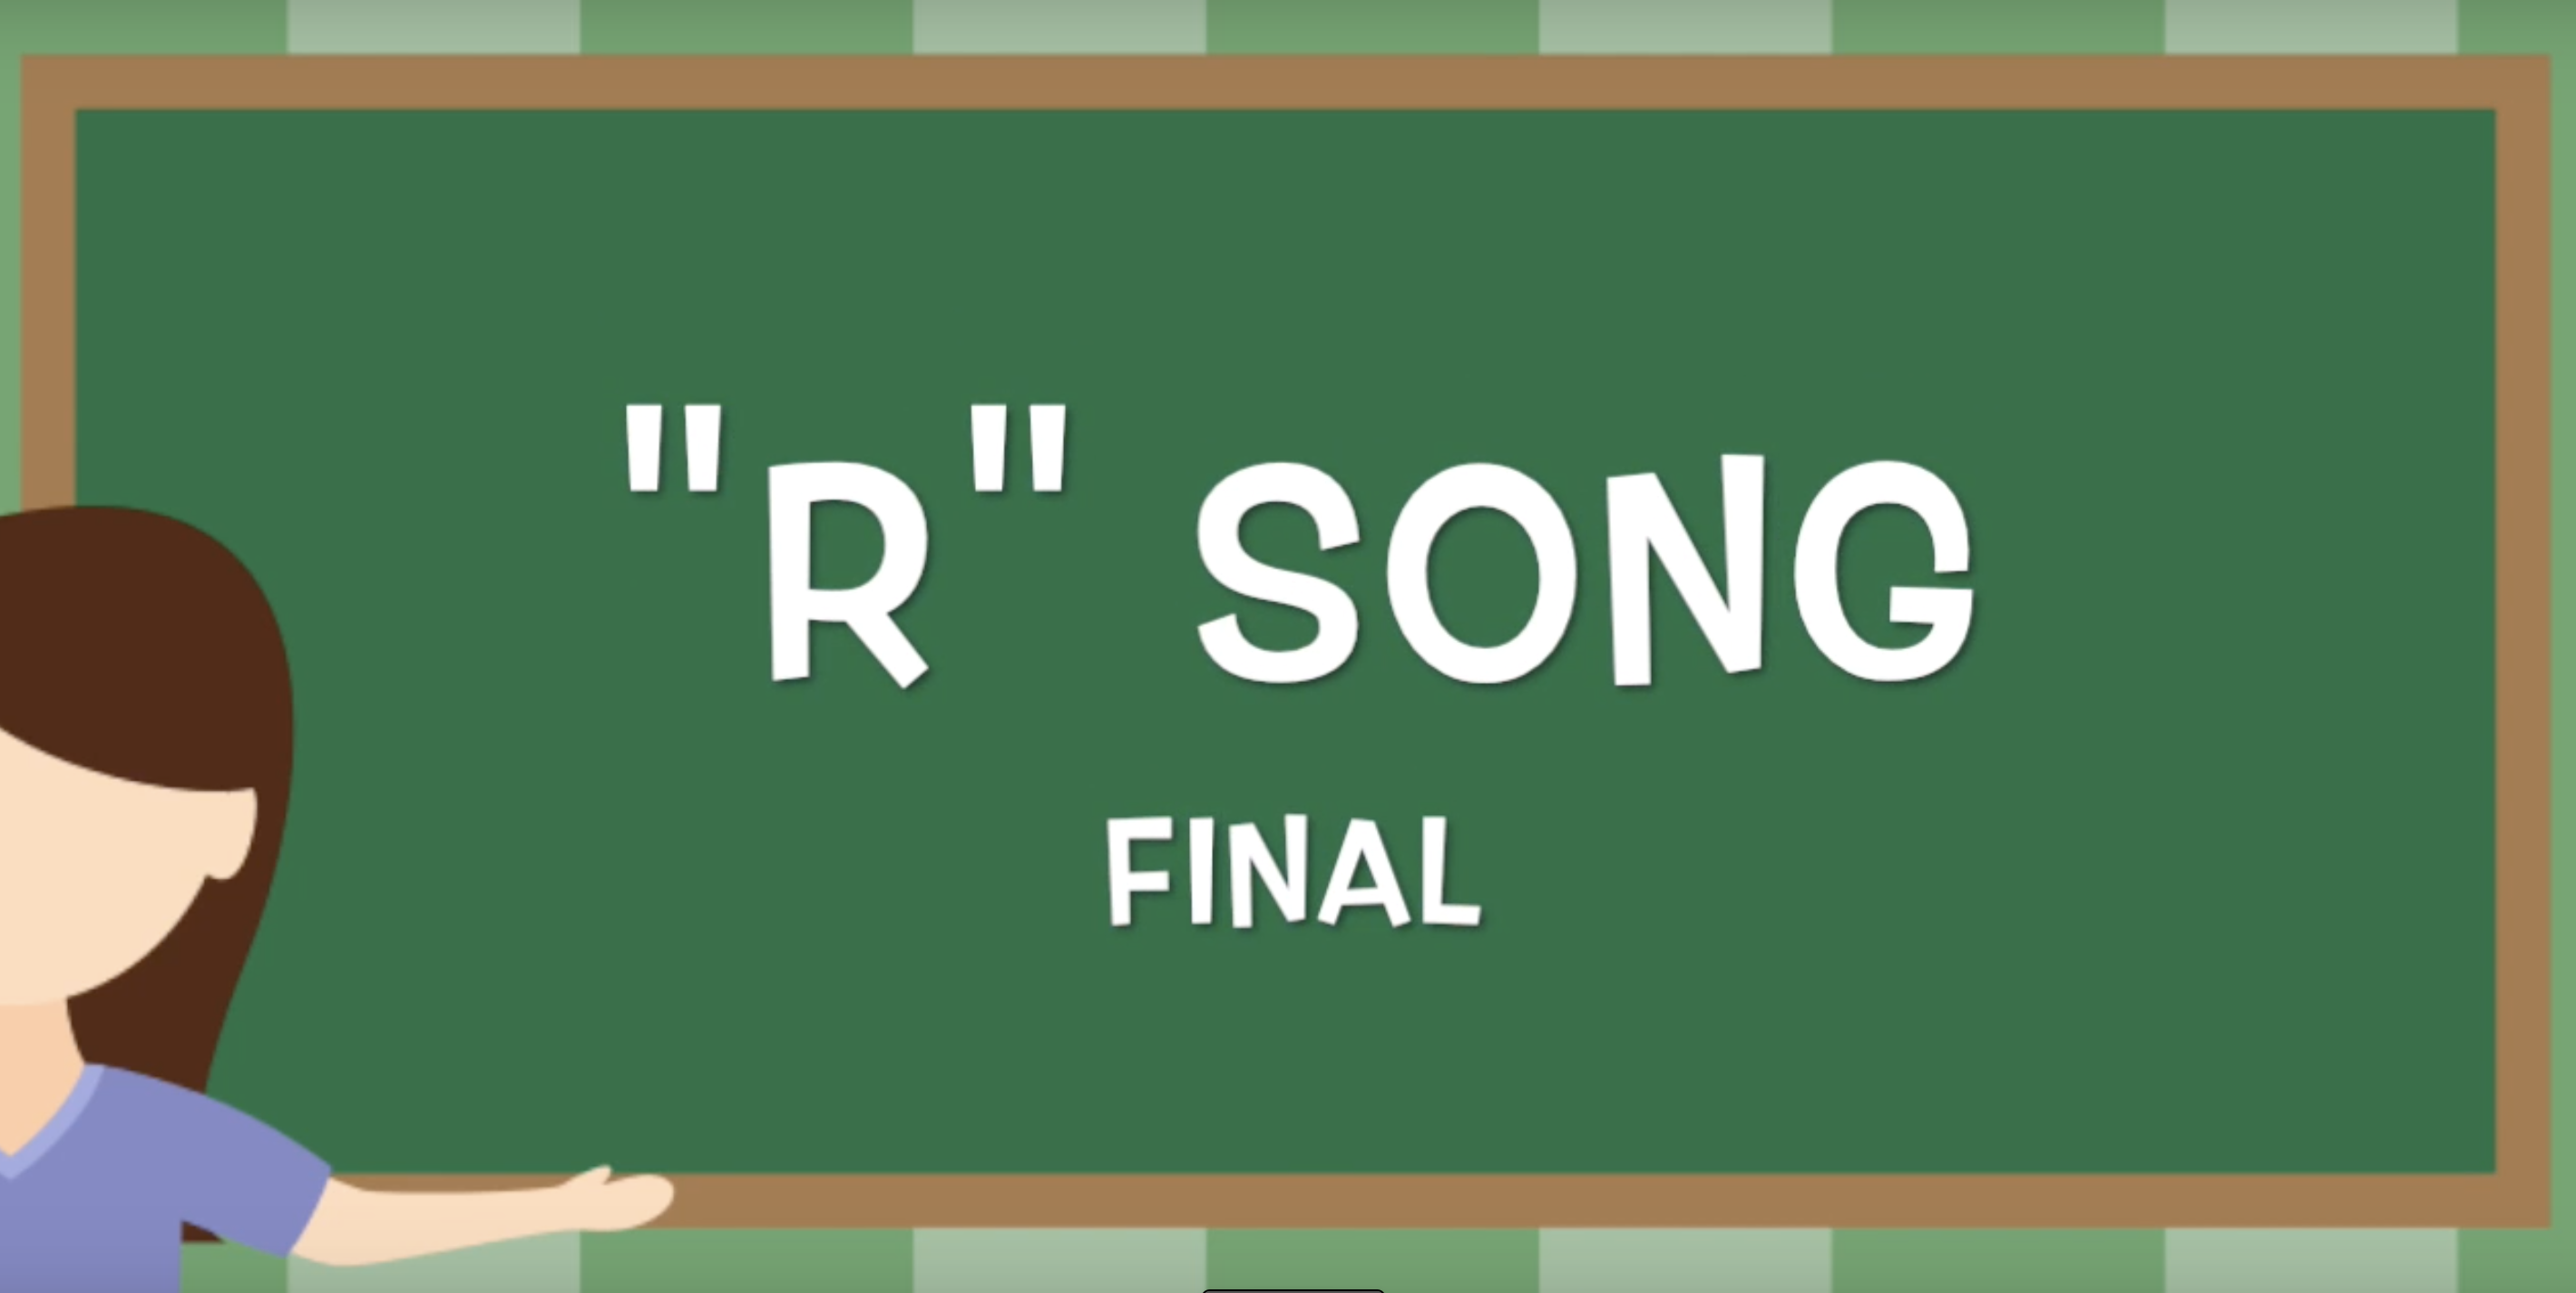 This Is A Speech And Language Song That Targets R In The